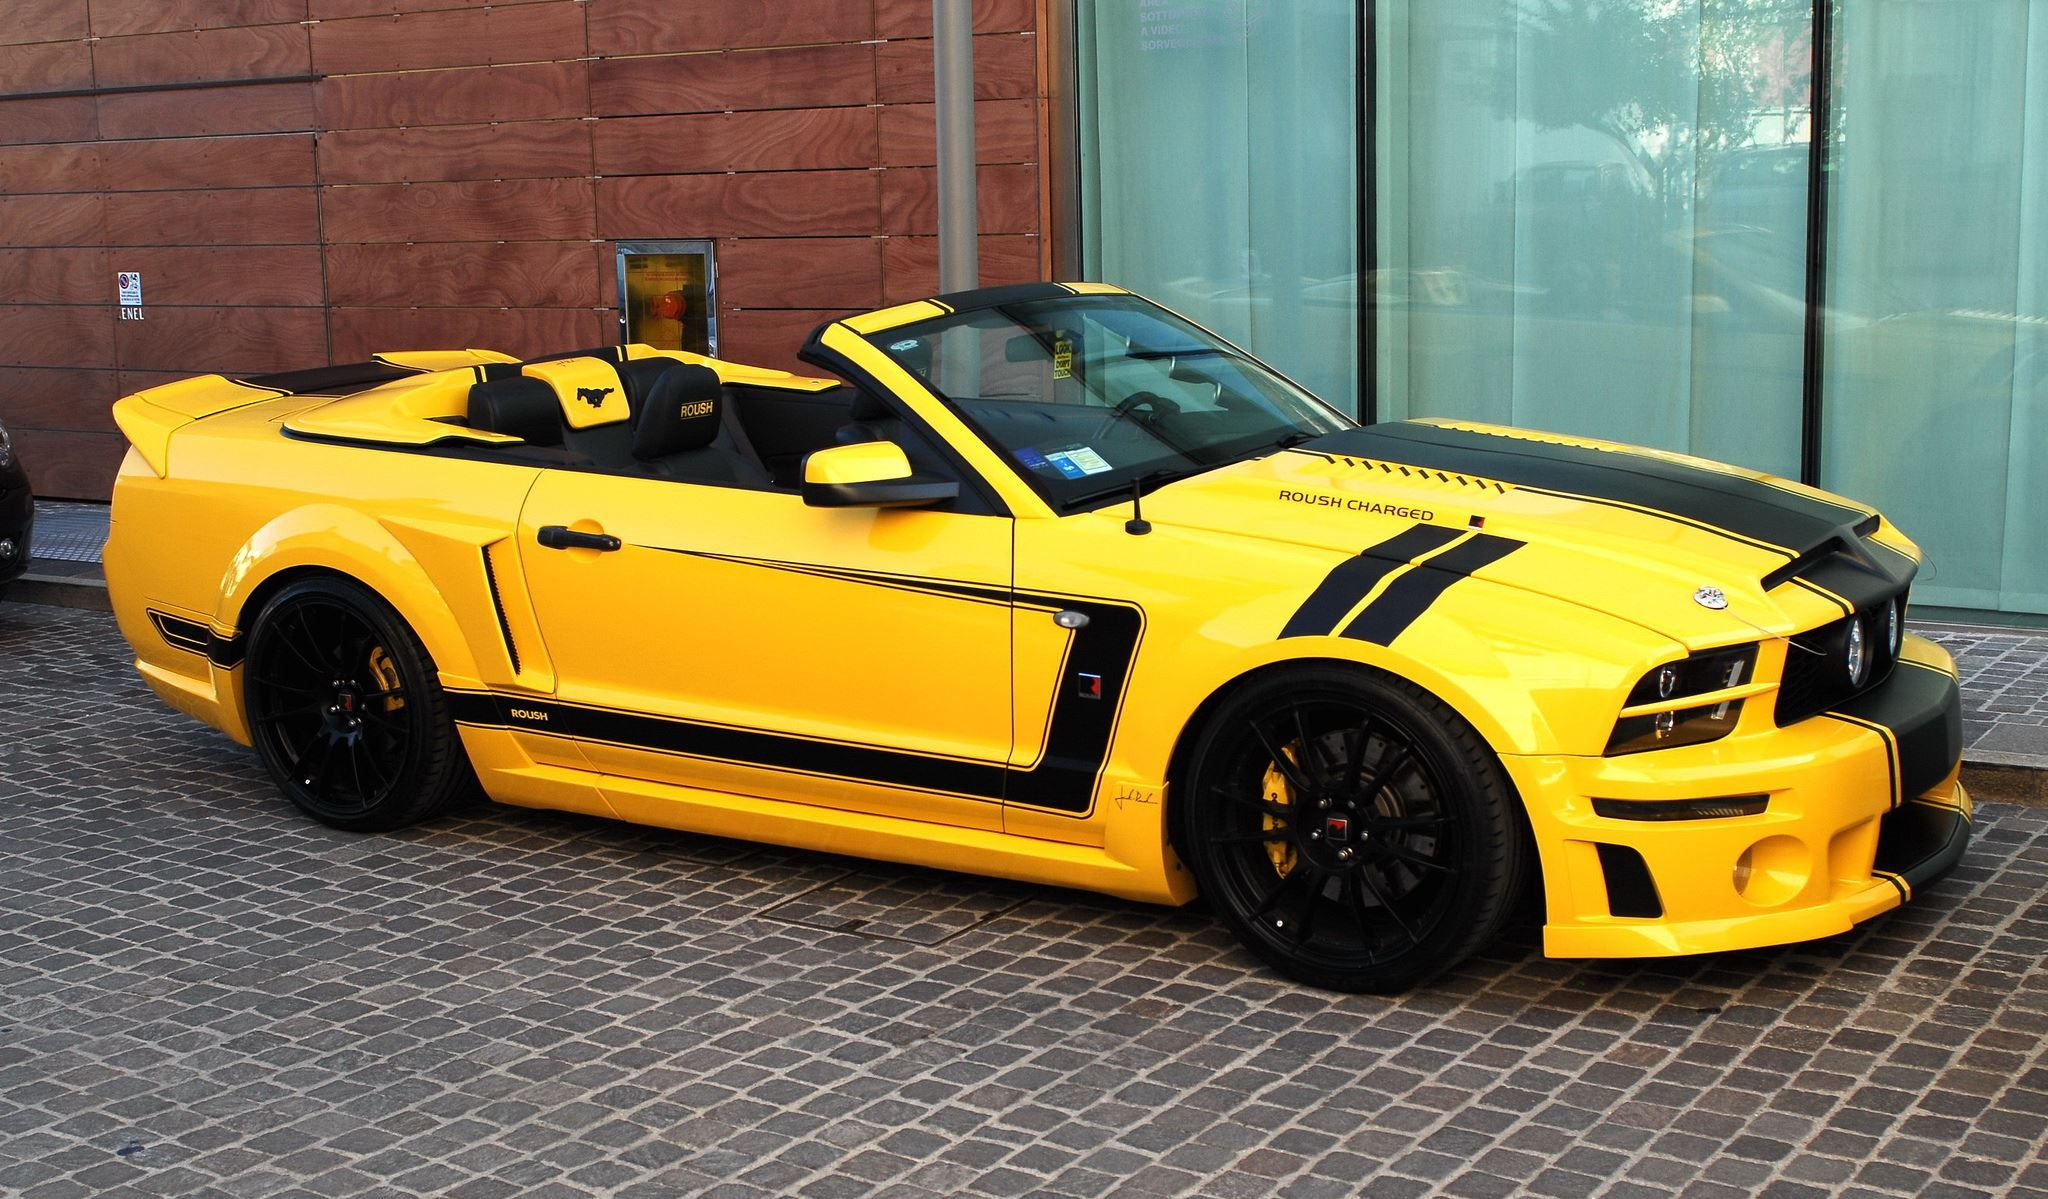 Mustang gt convertible by roush tuning